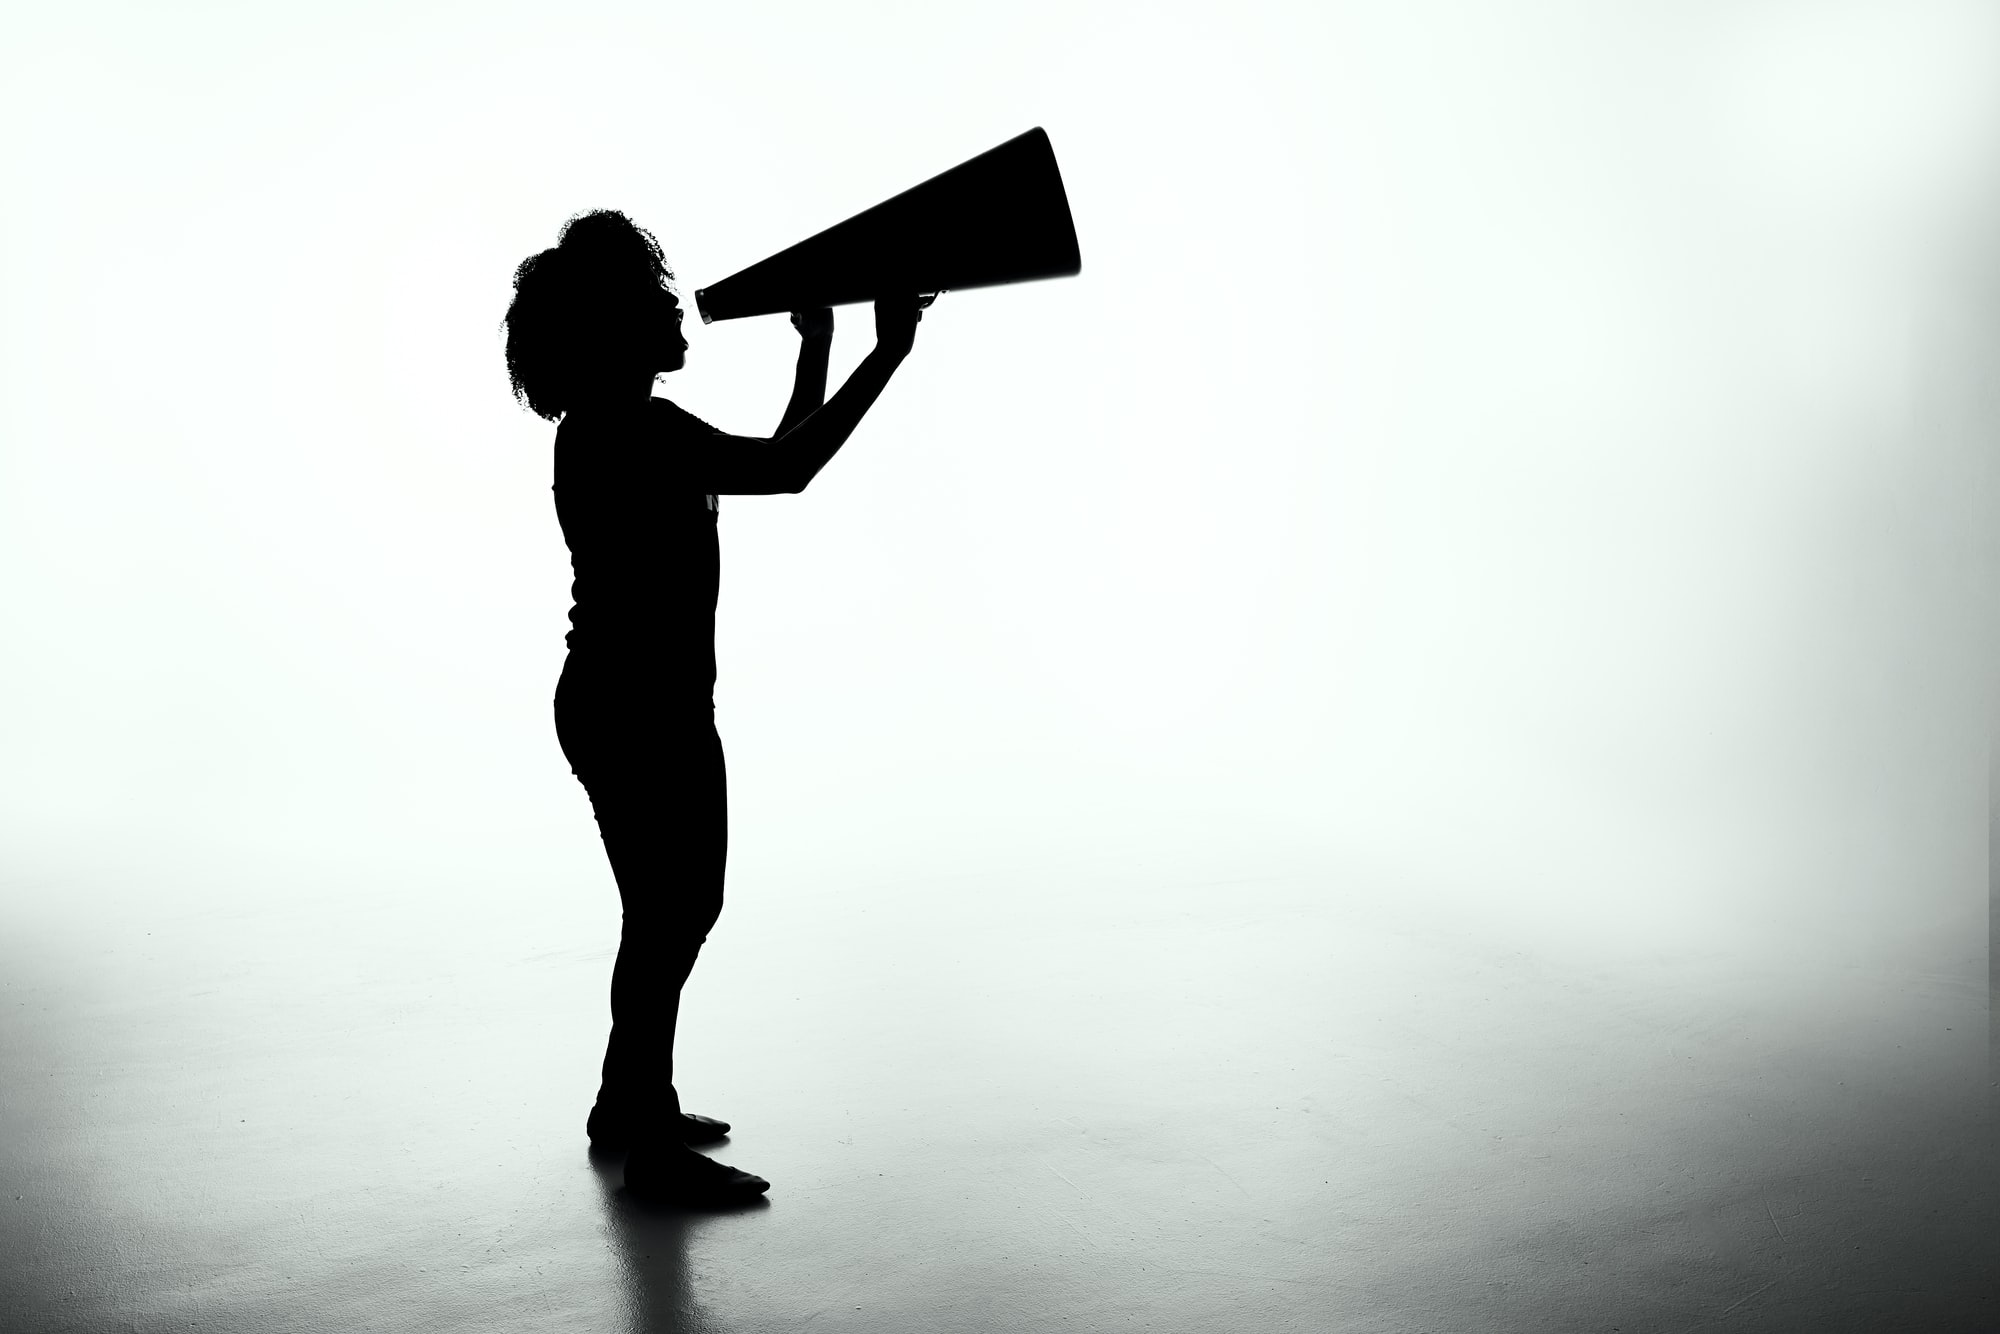 Silhouette of a female holding a analog megaphone.